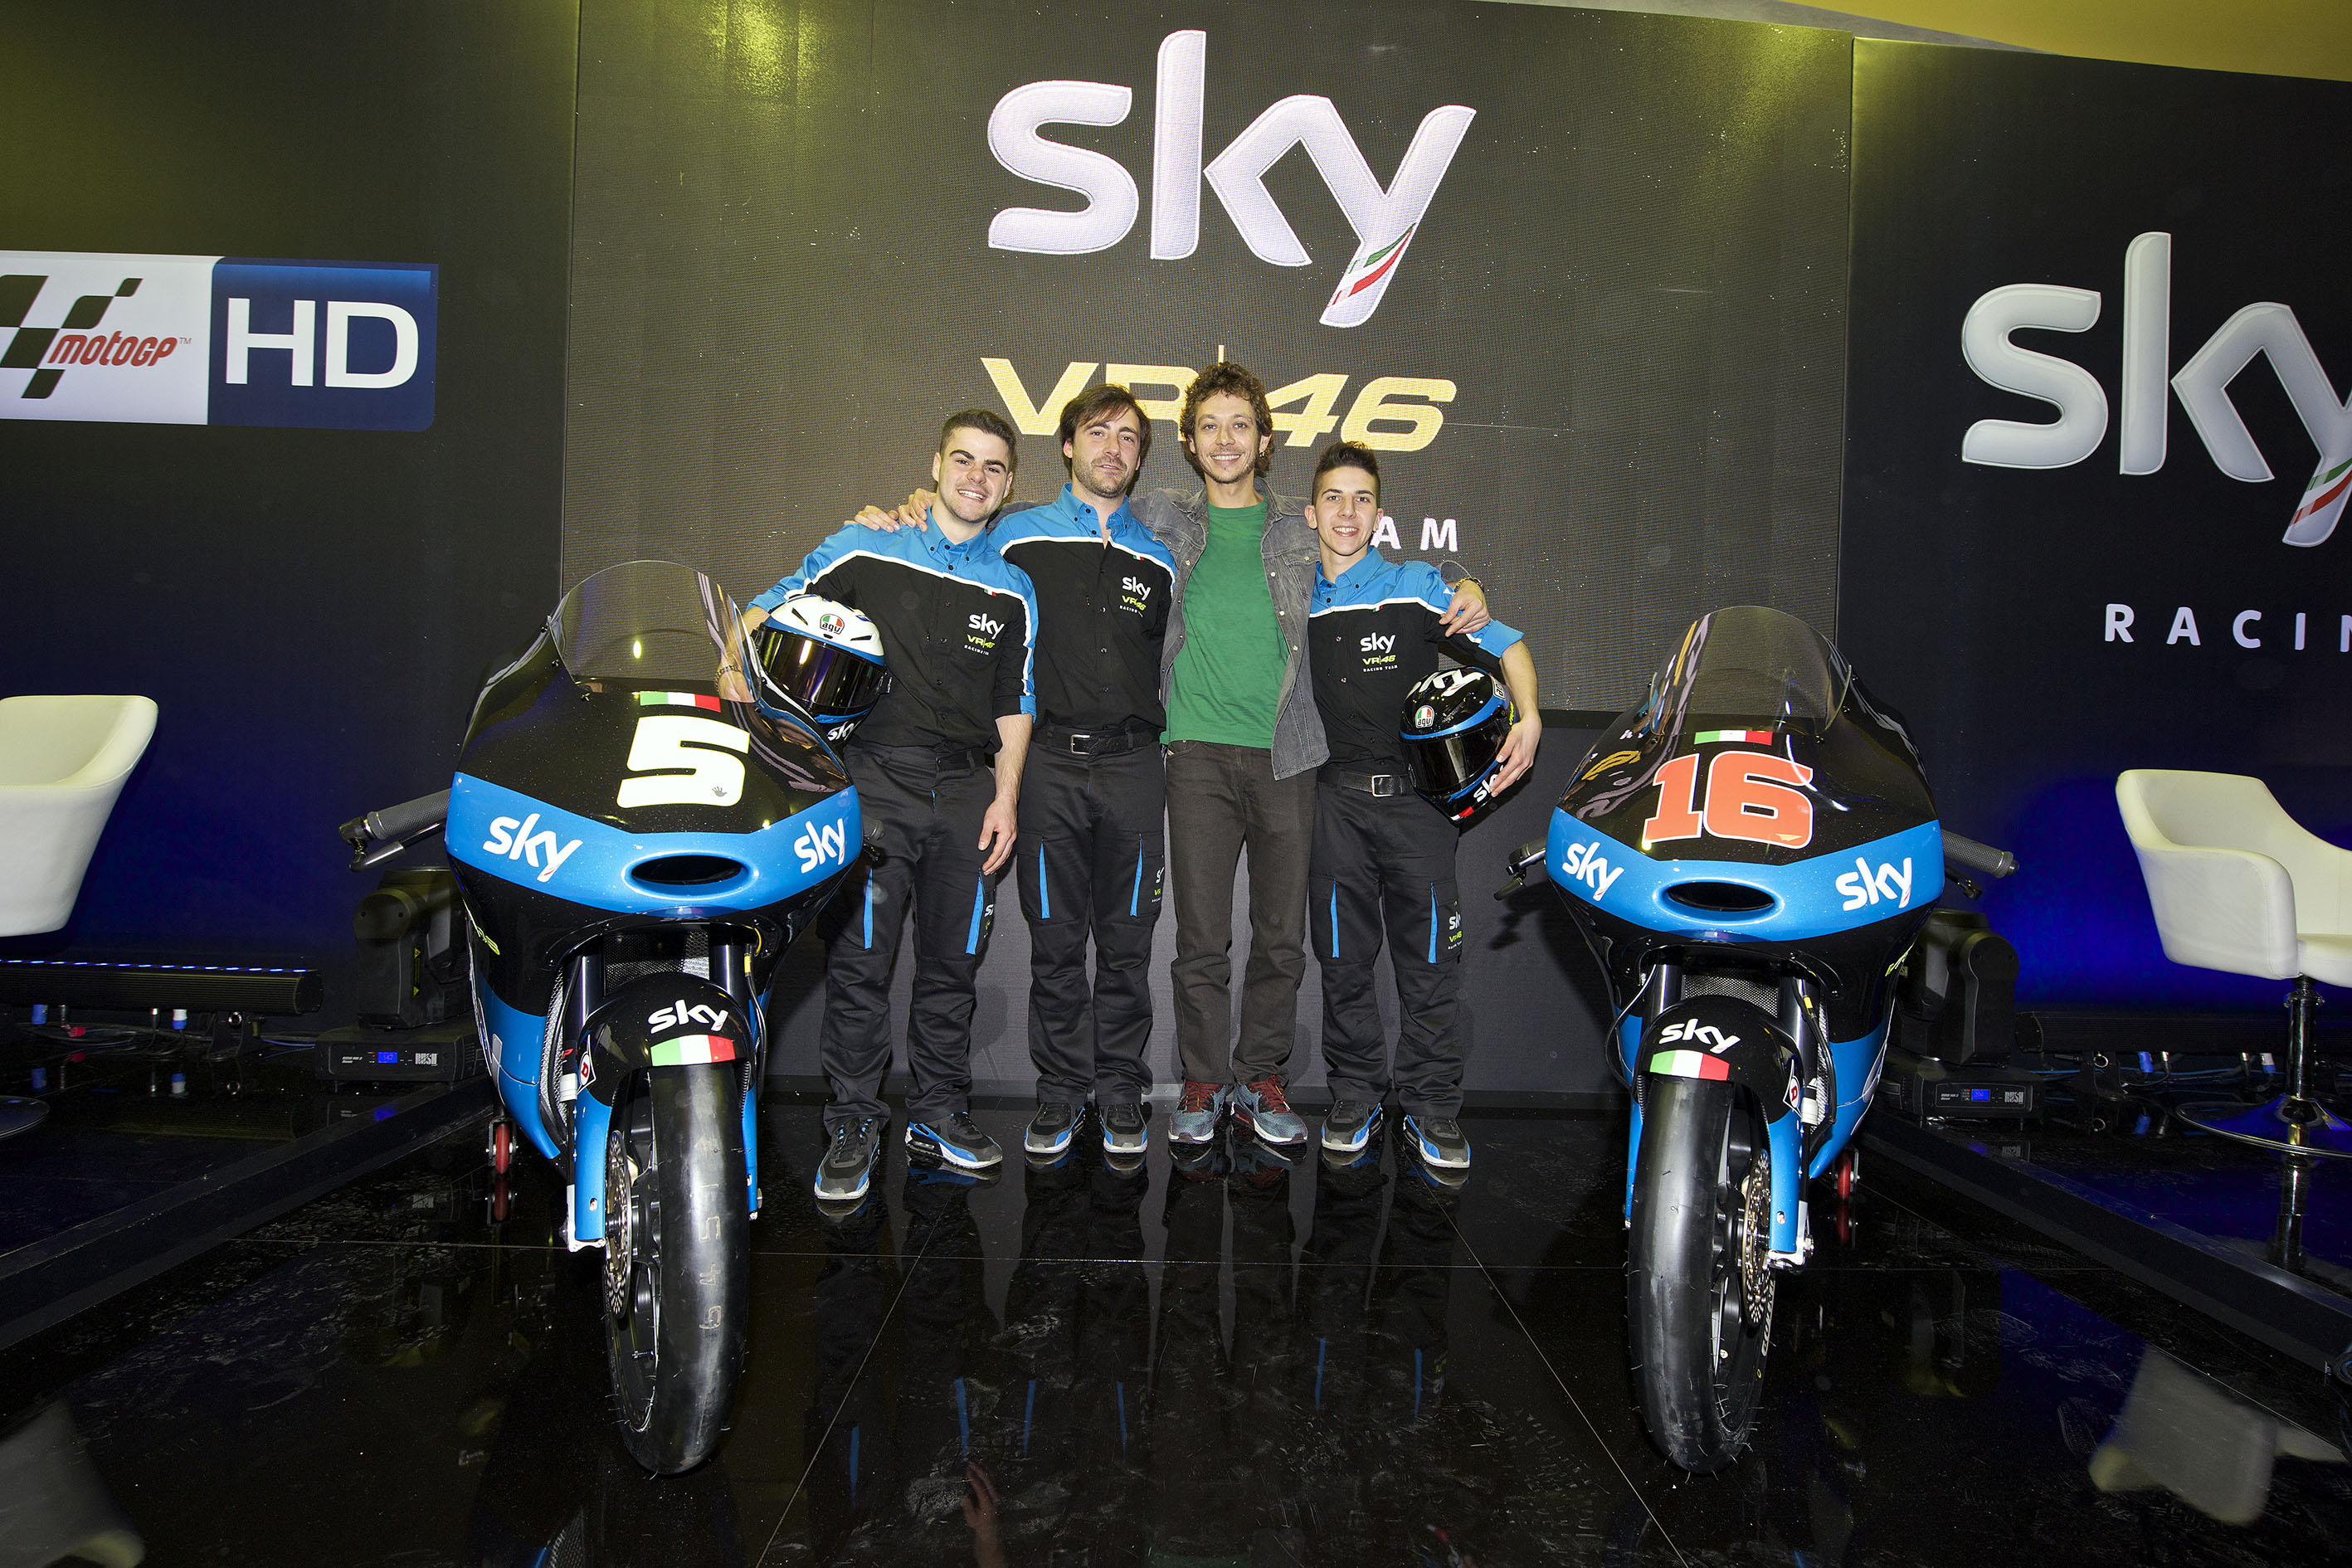 Ecco lo Sky Racing Team VR46 2015